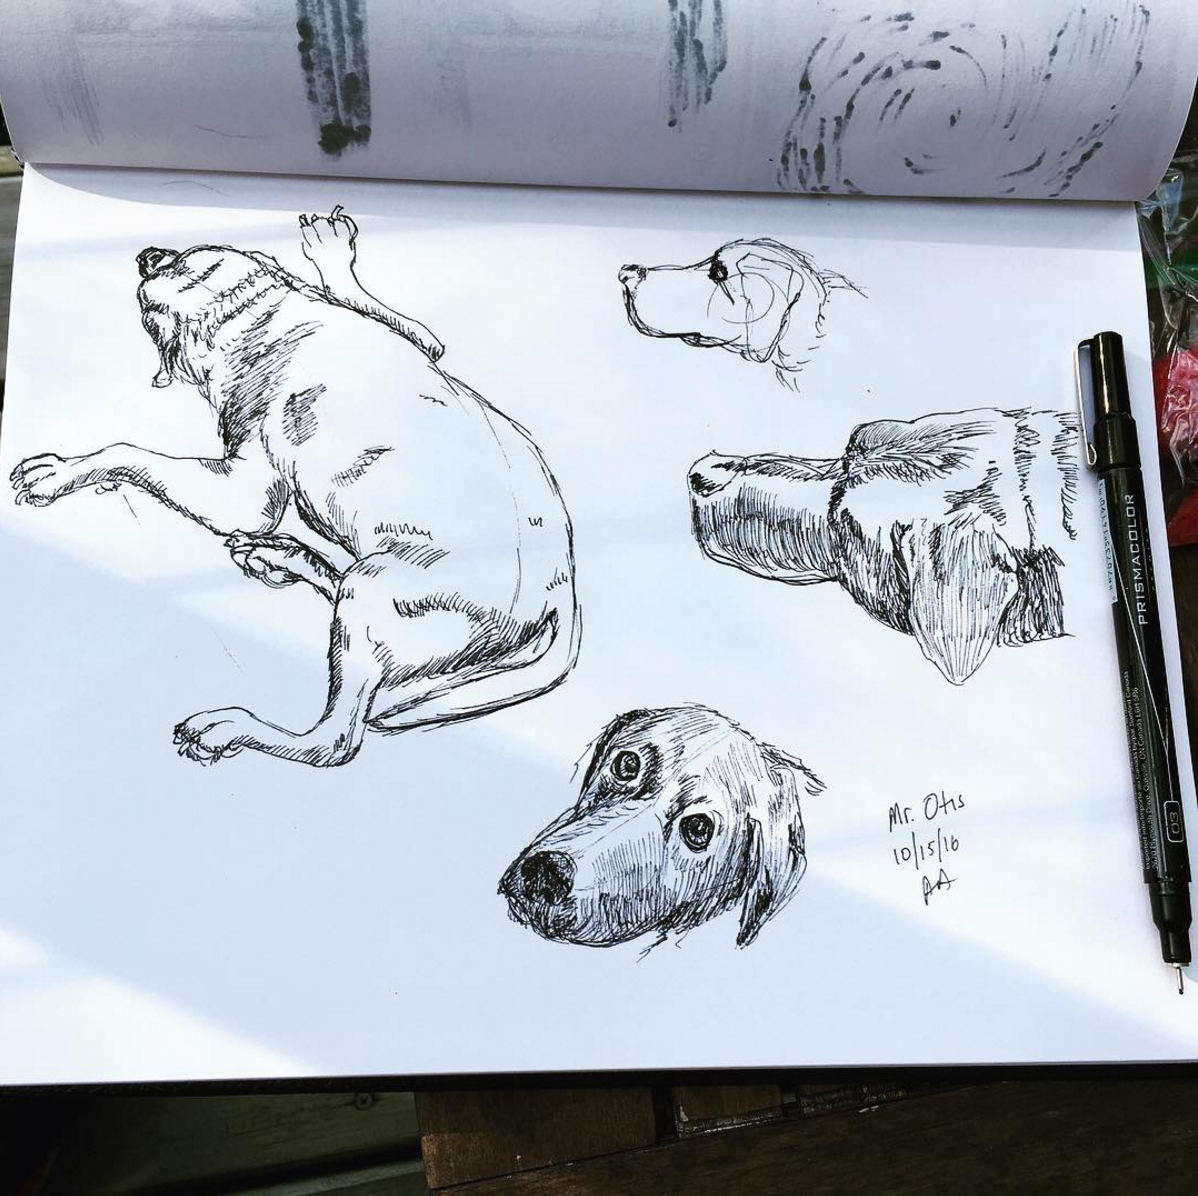 Sketches of Mr. Otis, the black lab that I was dogsitting this week!